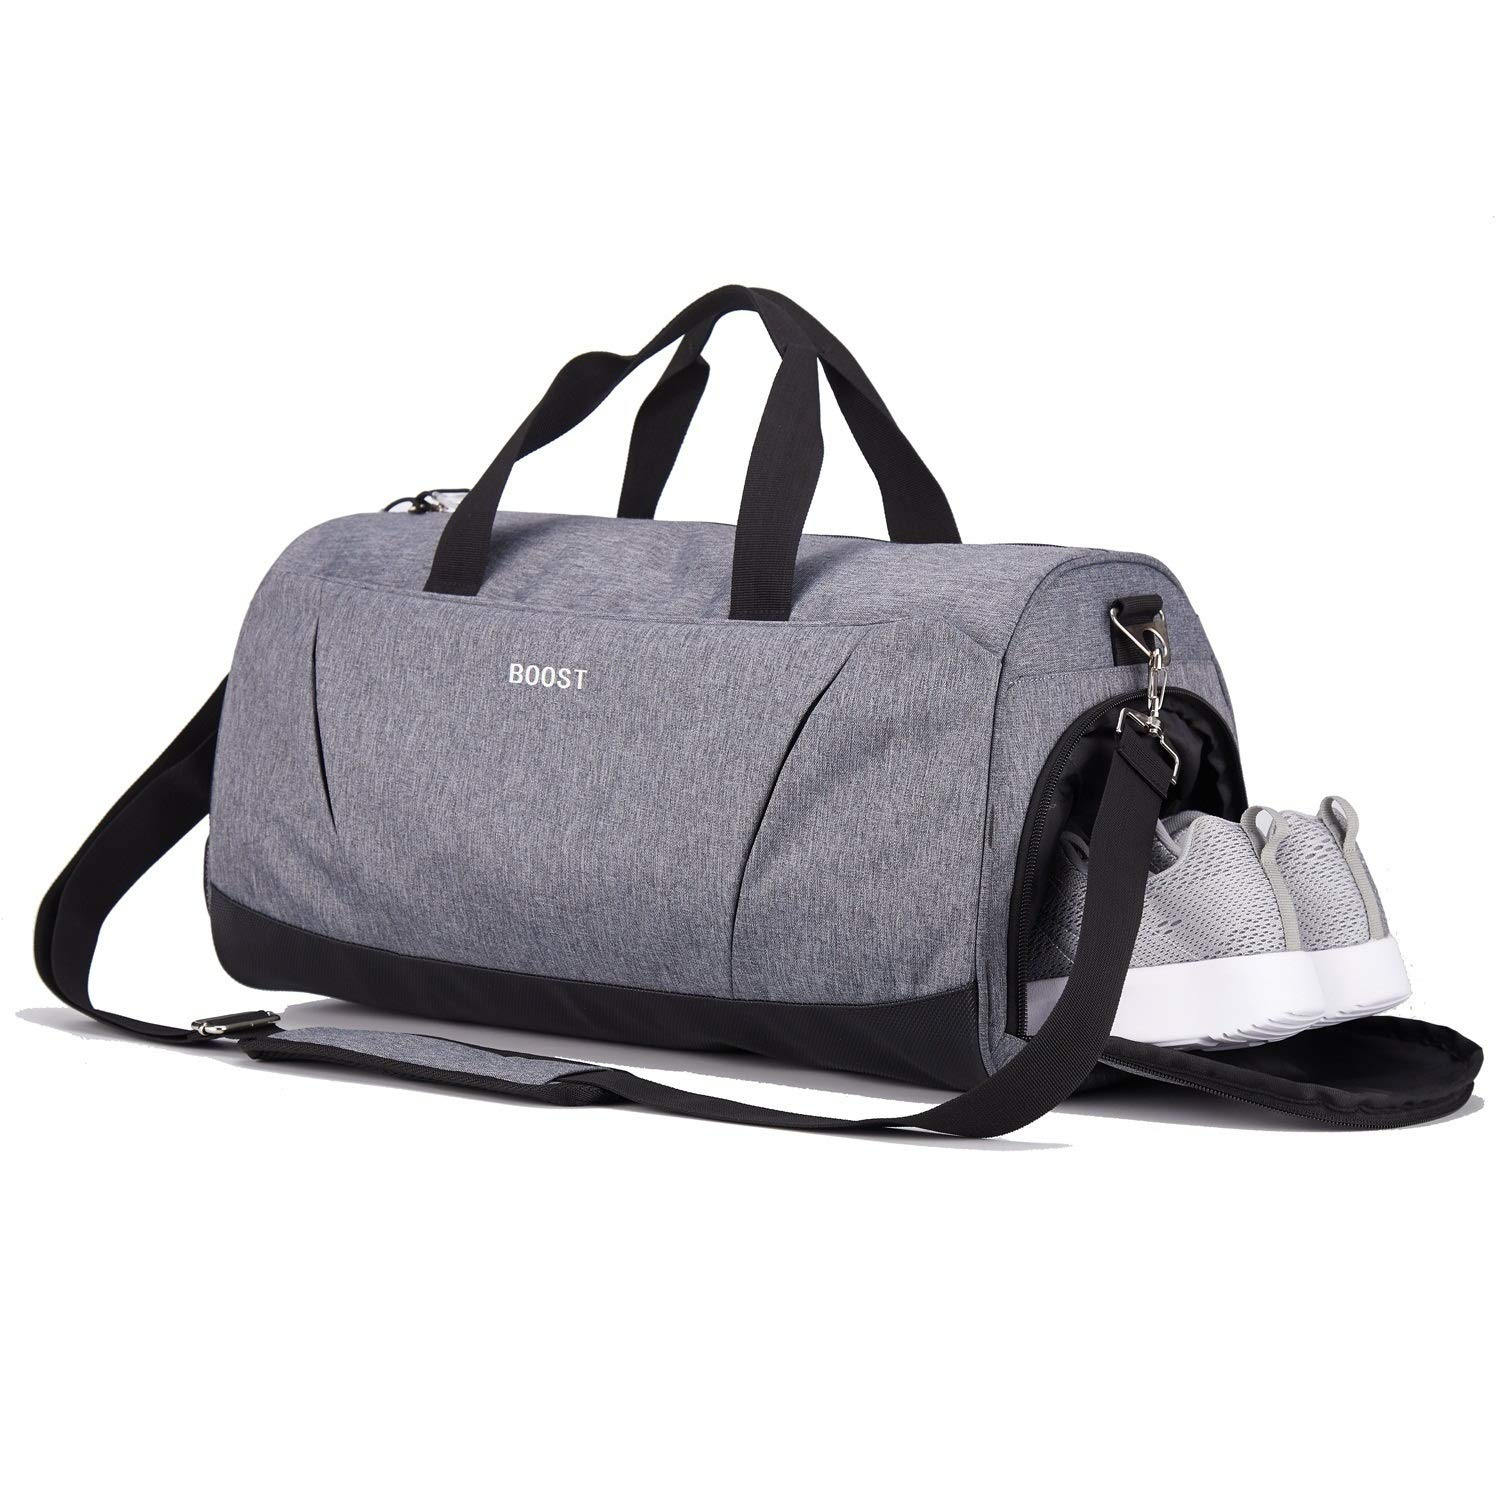 free shipping 80dd1 3498d Sports Gym Bag with Shoes Compartment for Men and Women product image